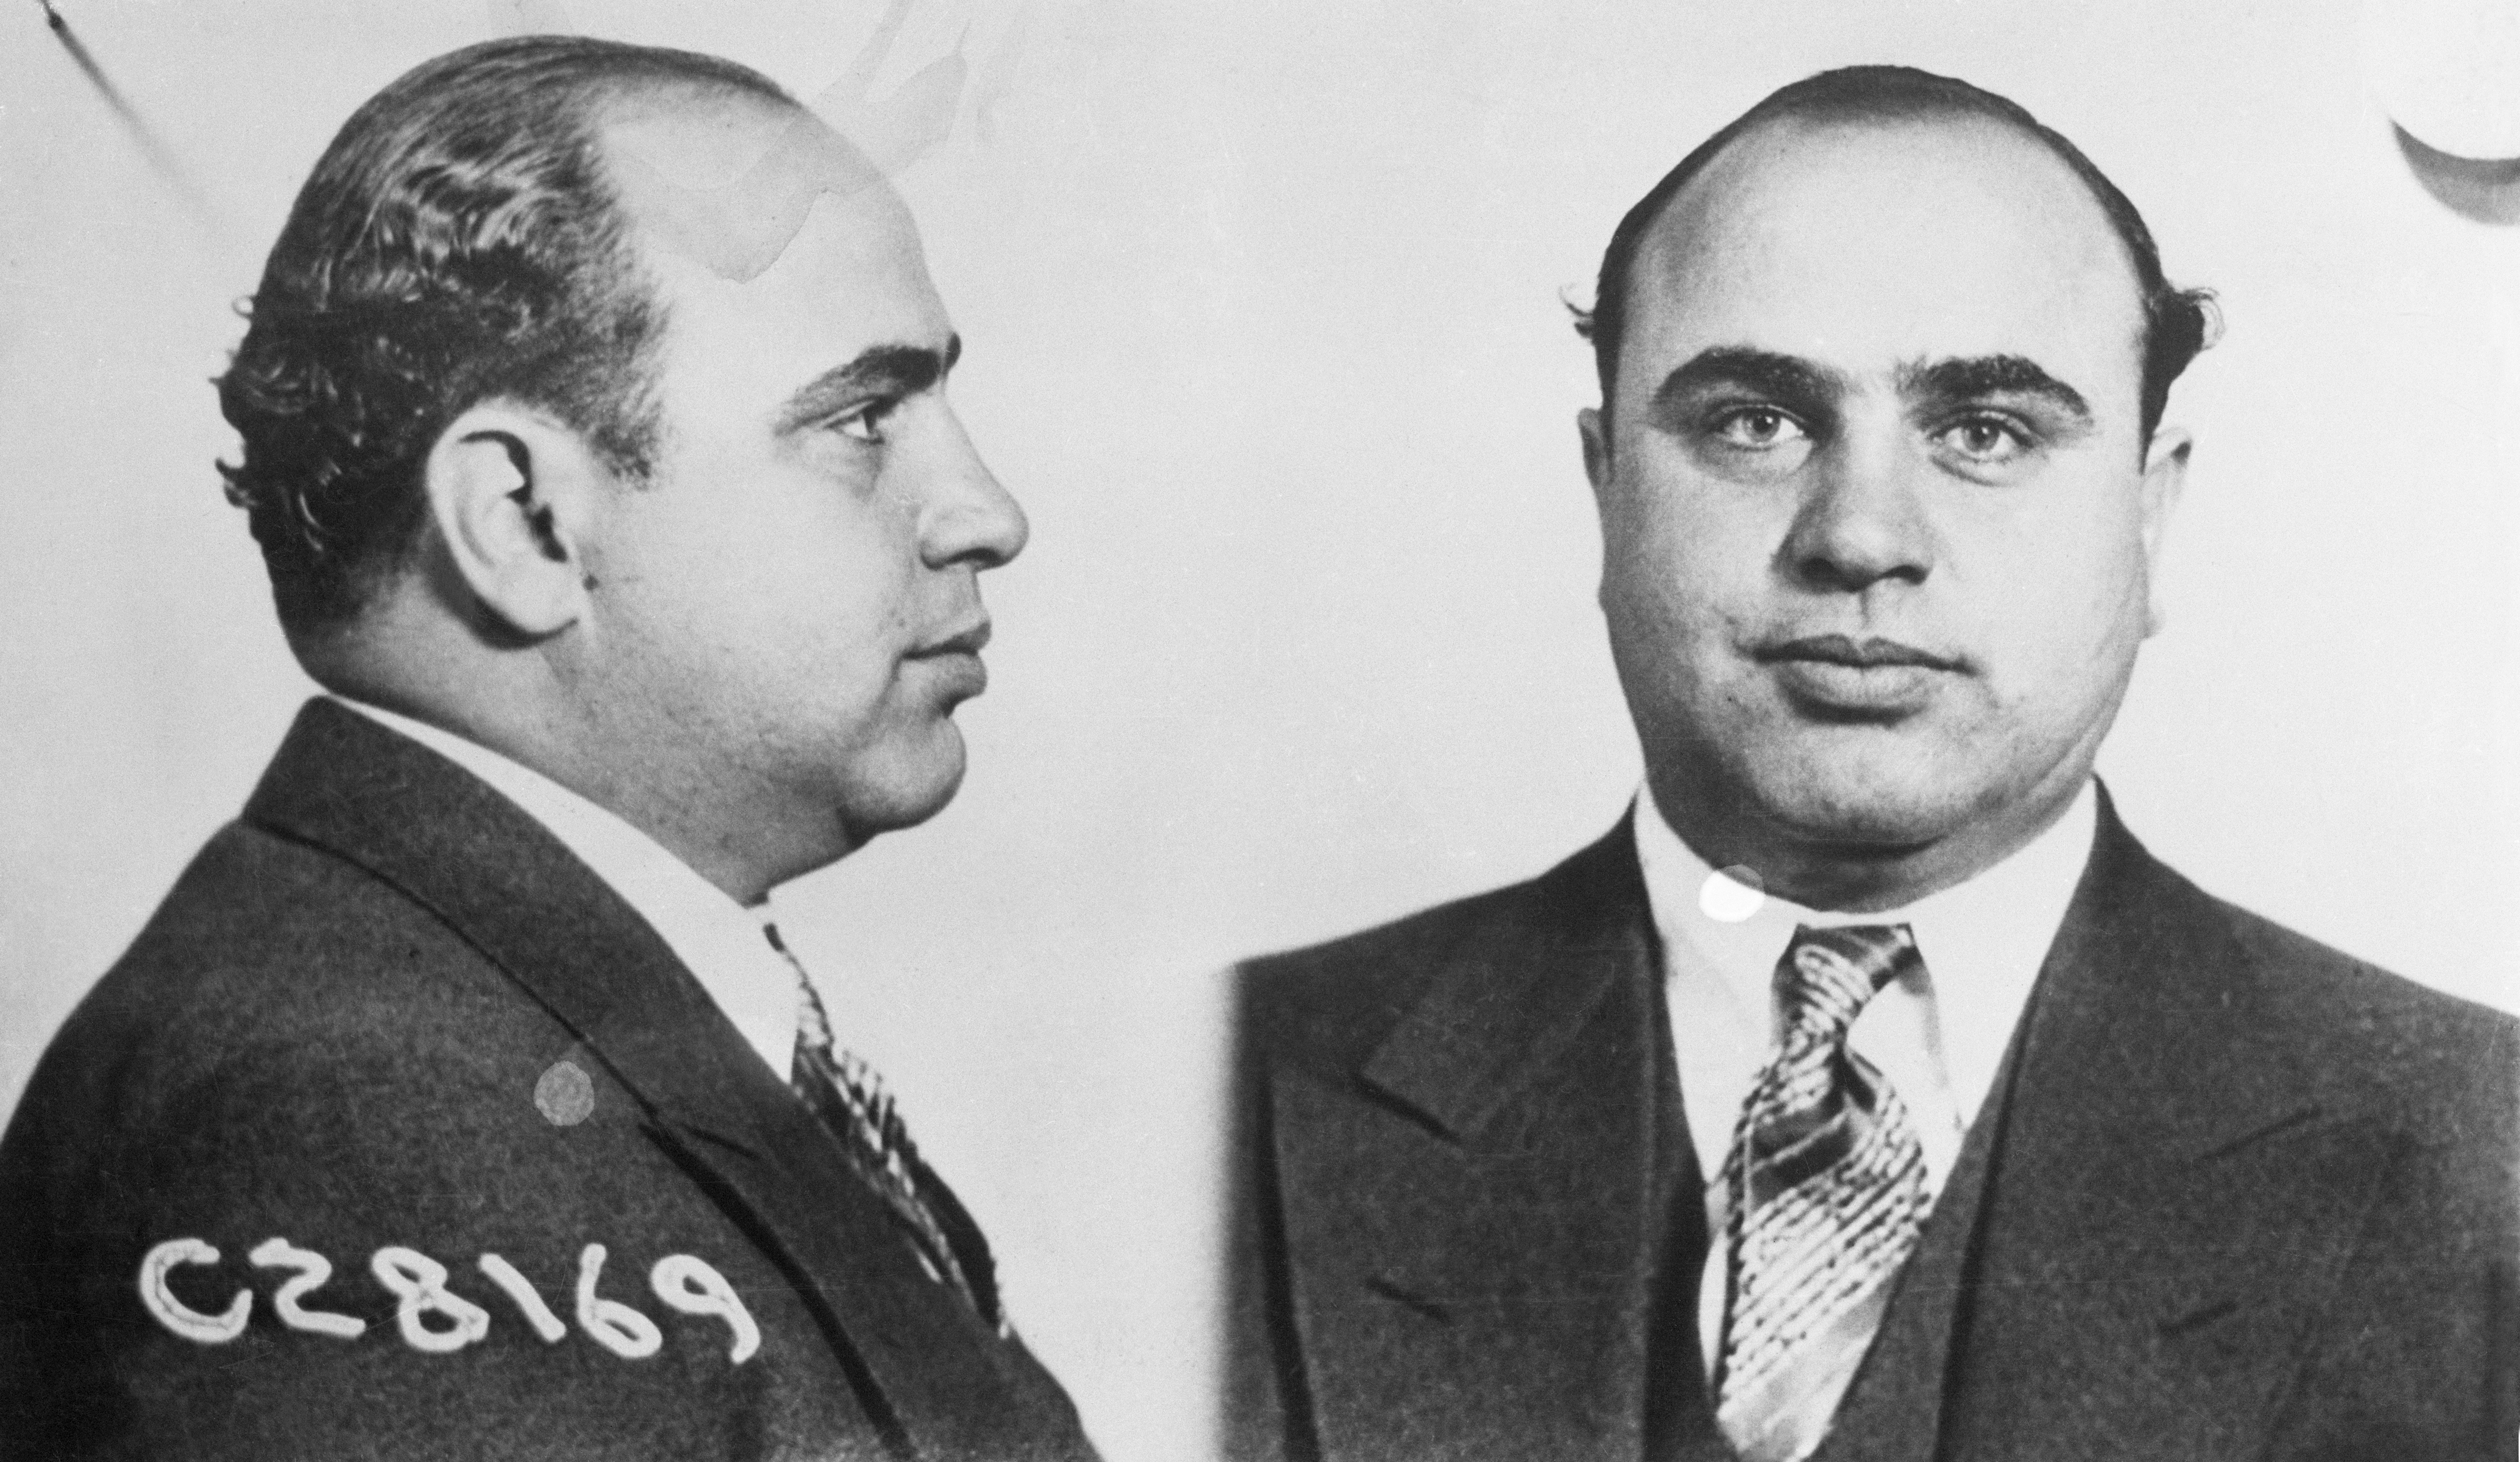 Mugshot of Gangster Al Capone